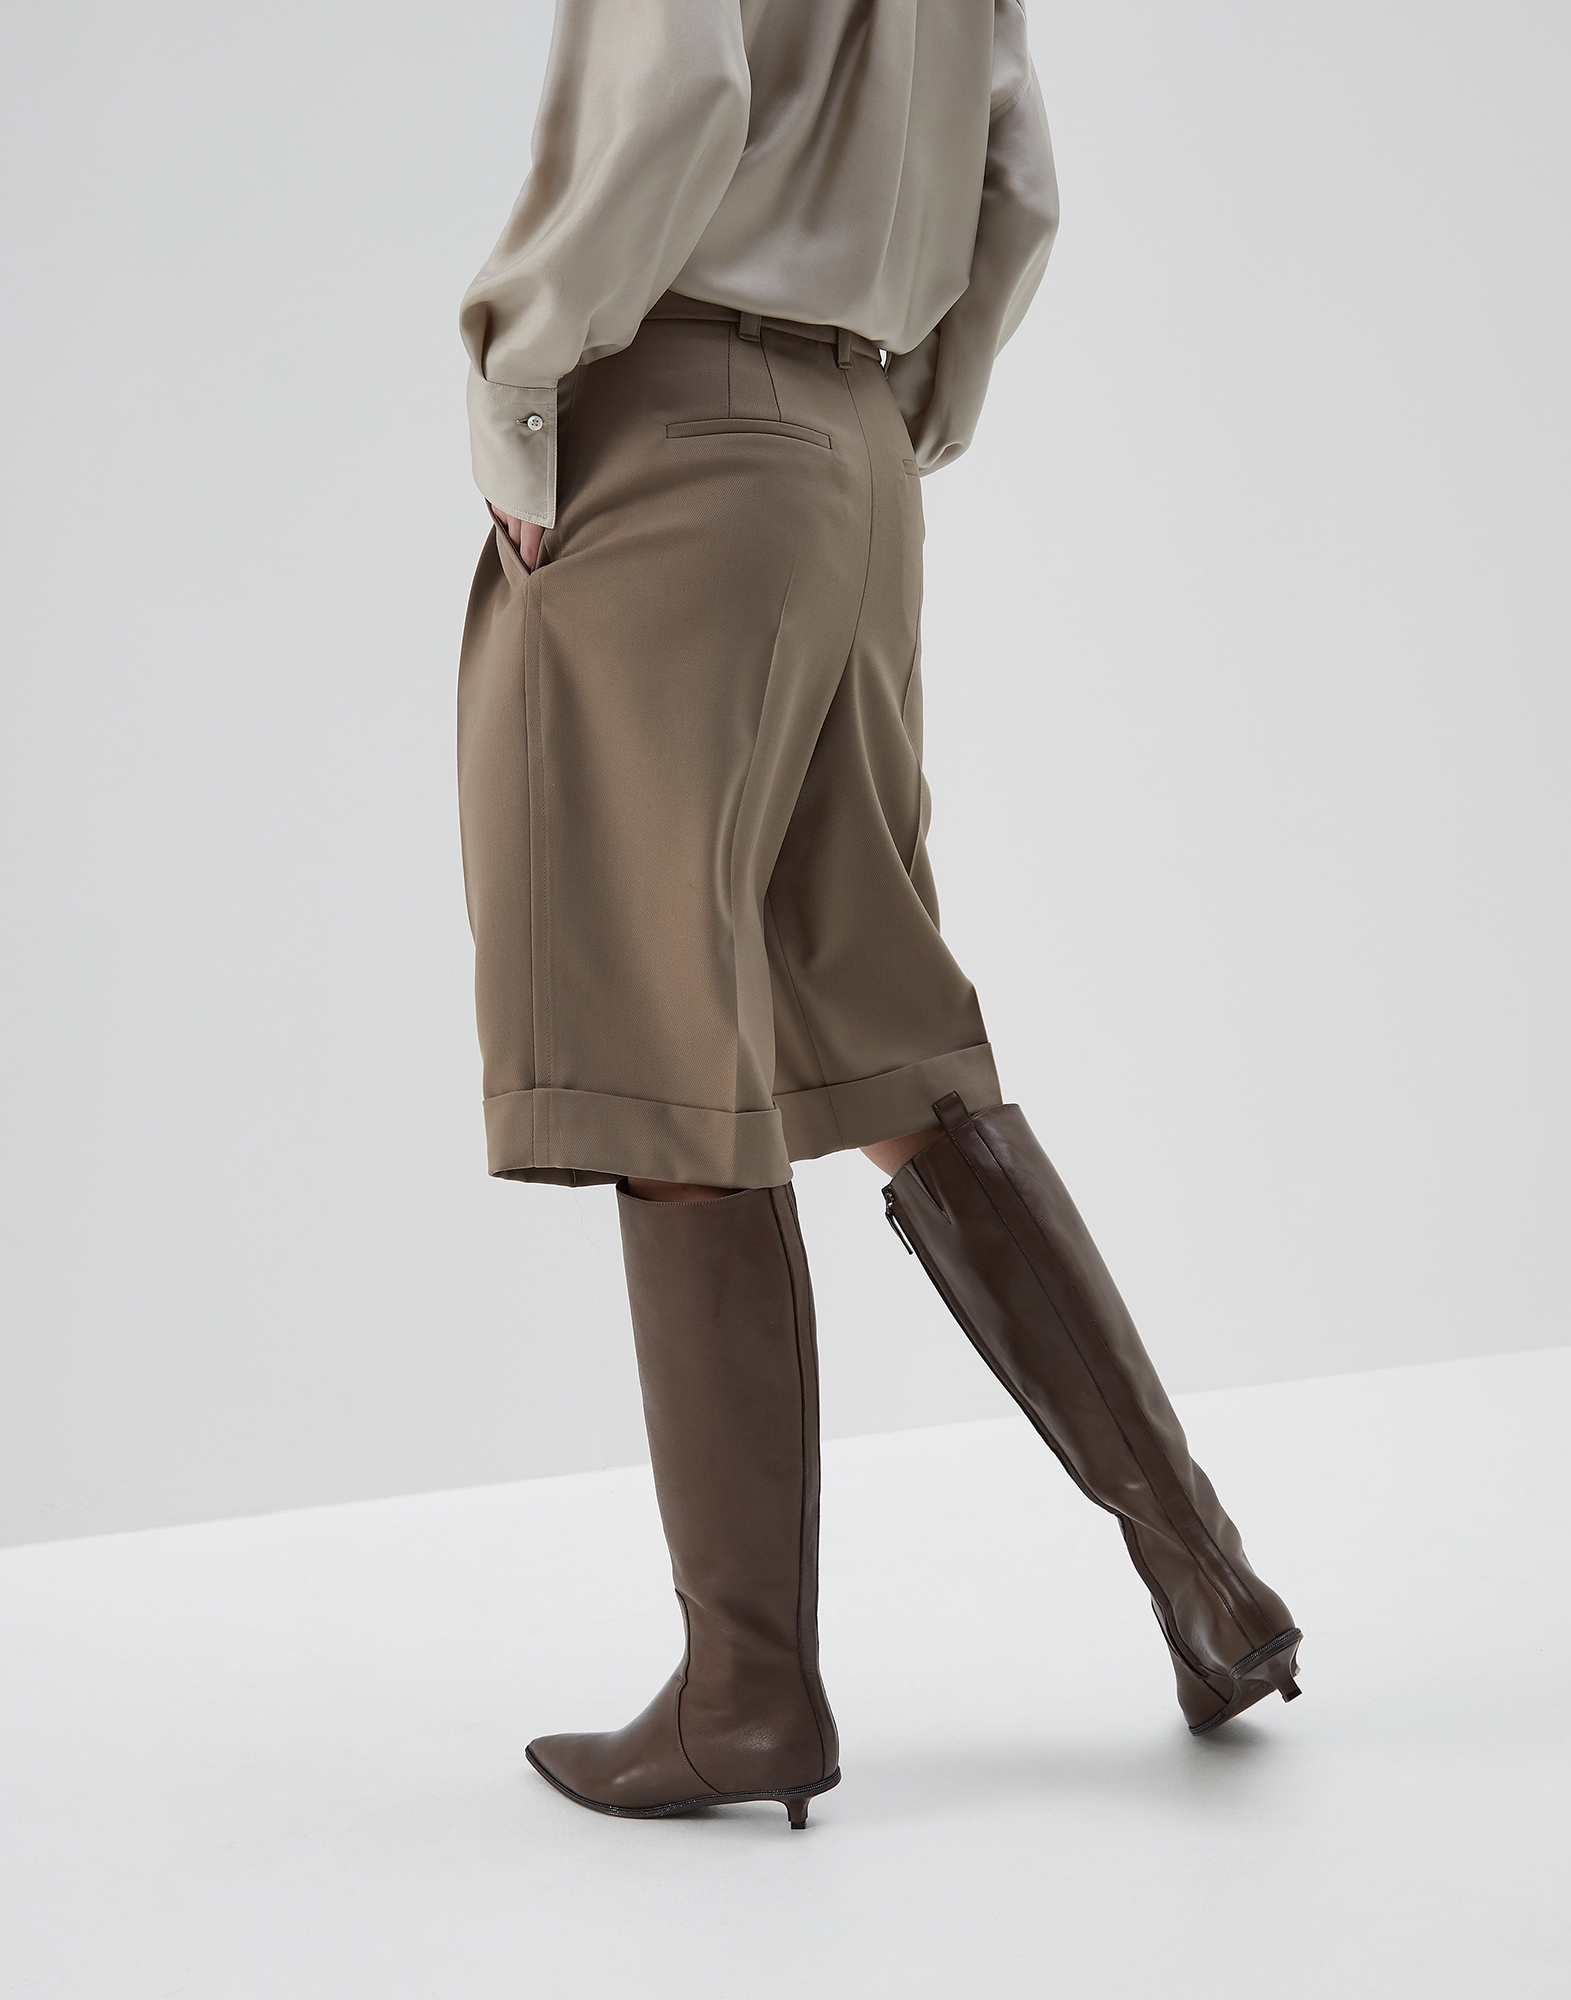 Bermuda Shorts Brown Woman 1 - Brunello Cucinelli